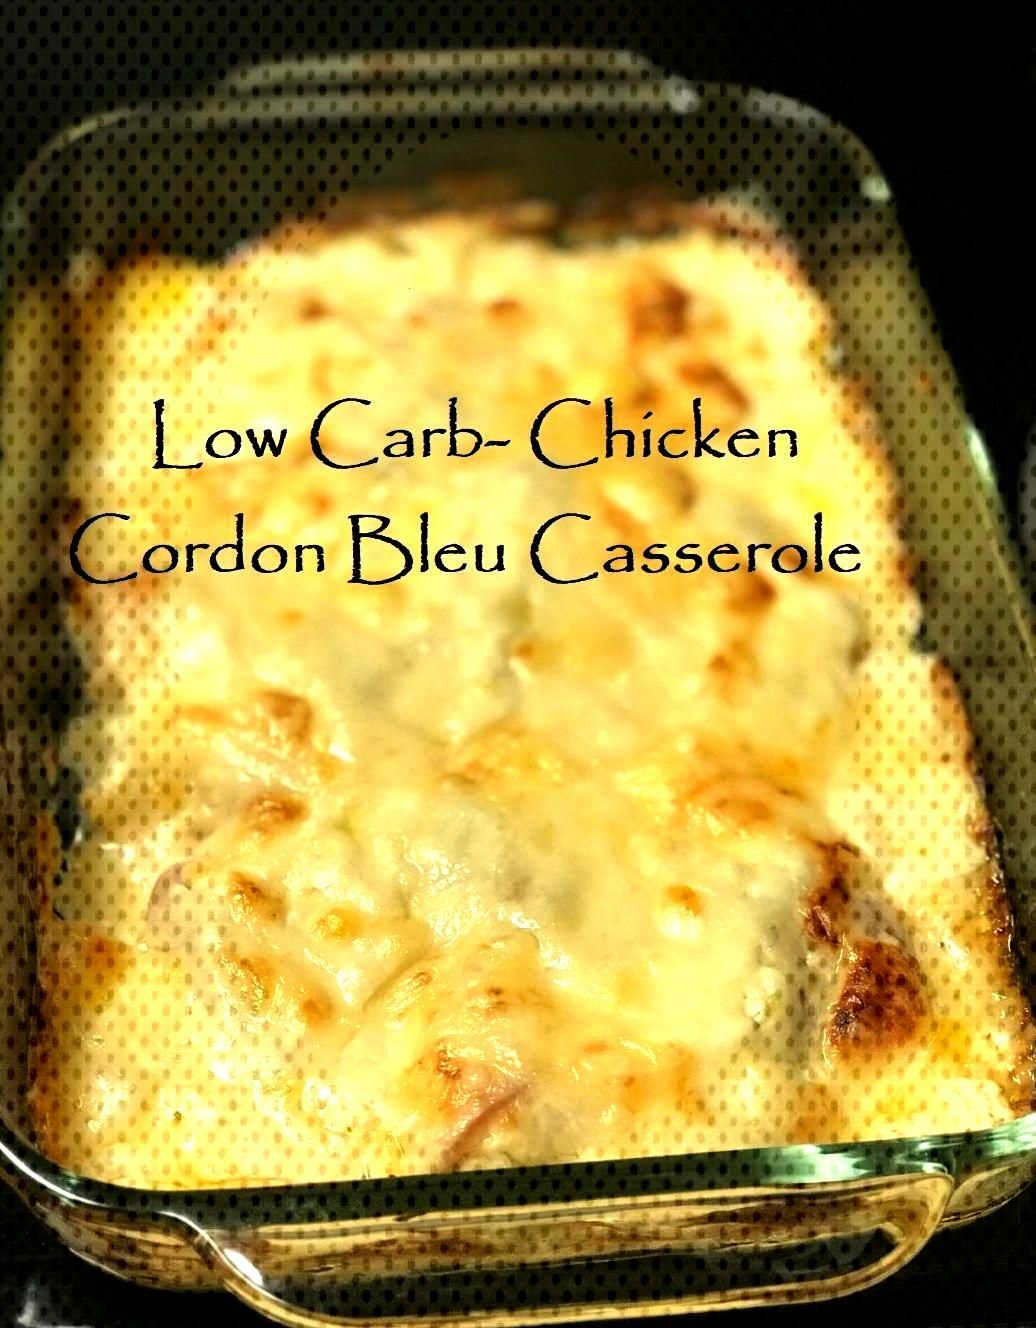 *Warning: The sauce in this casserole dish is absolutely addicting!   This gluten free, high pr